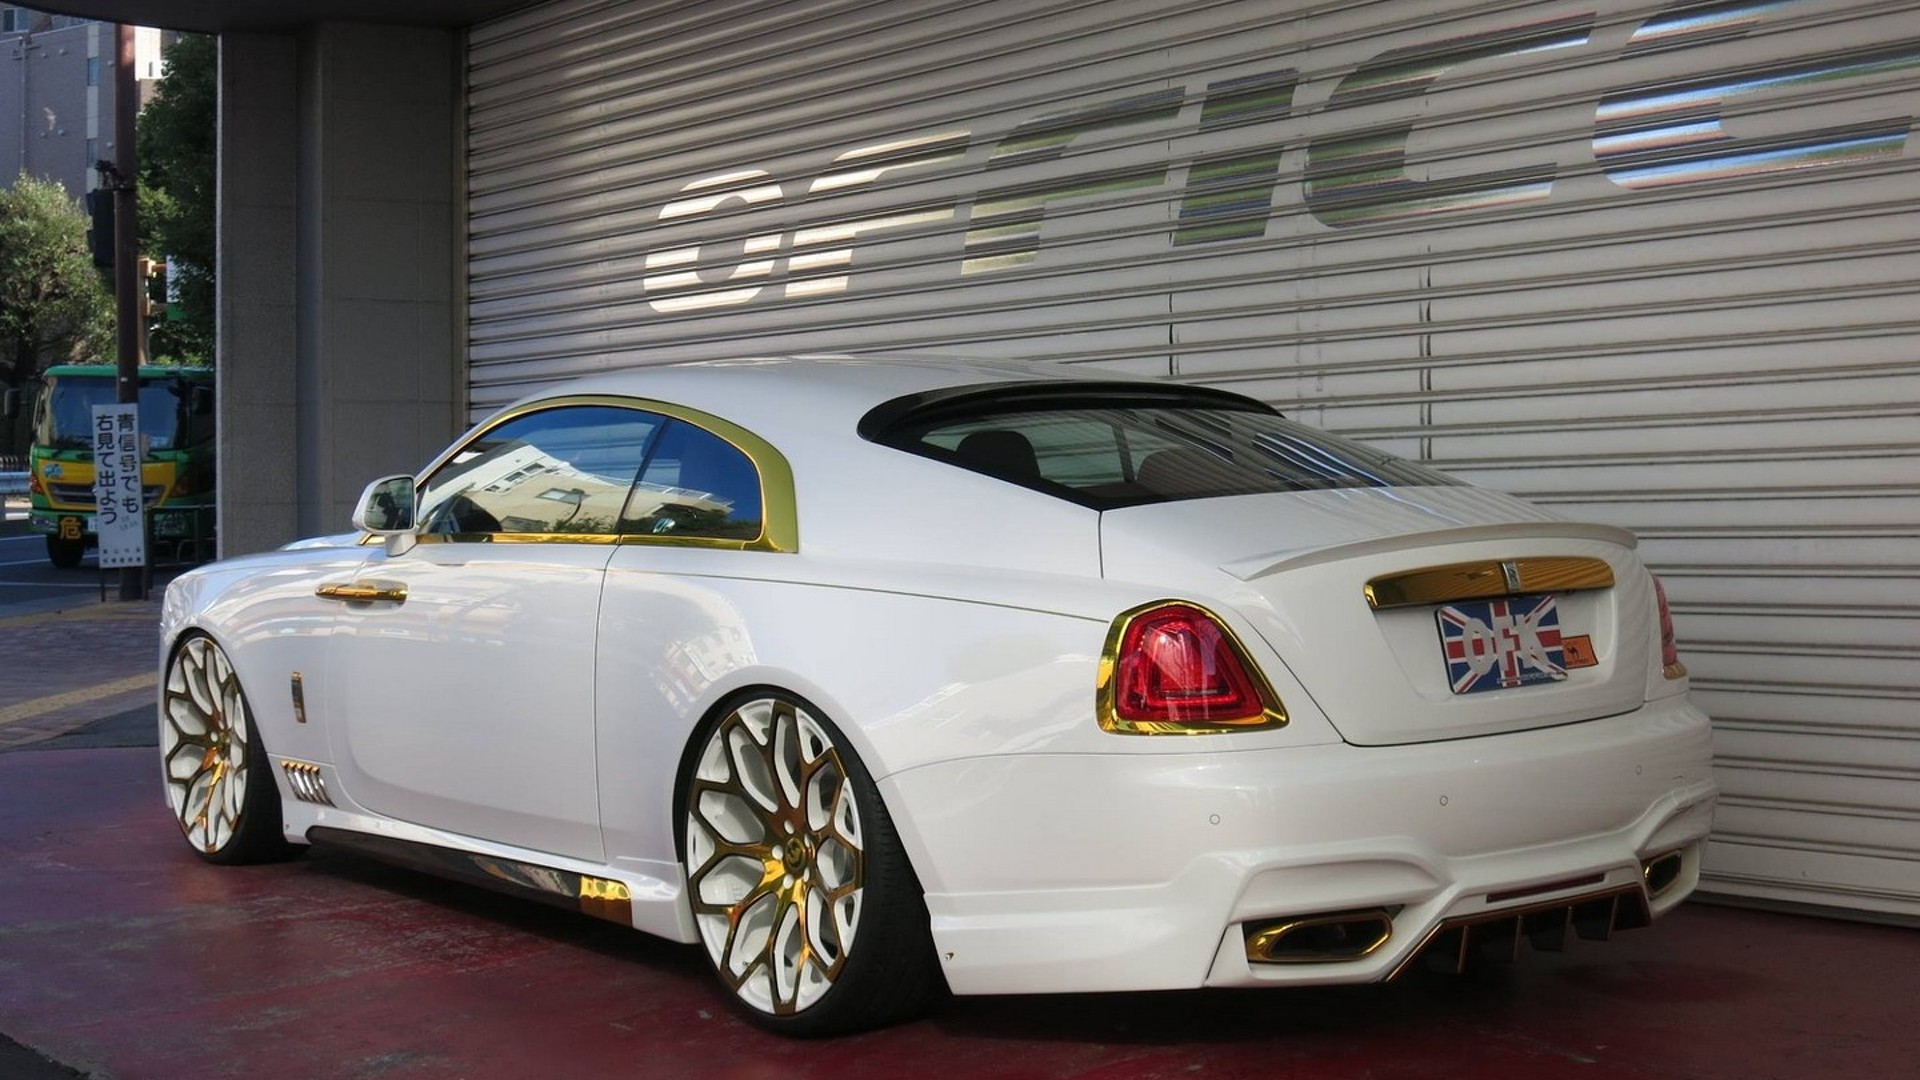 rolls-royce wraithoffice-k is not exactly what we would call elegant